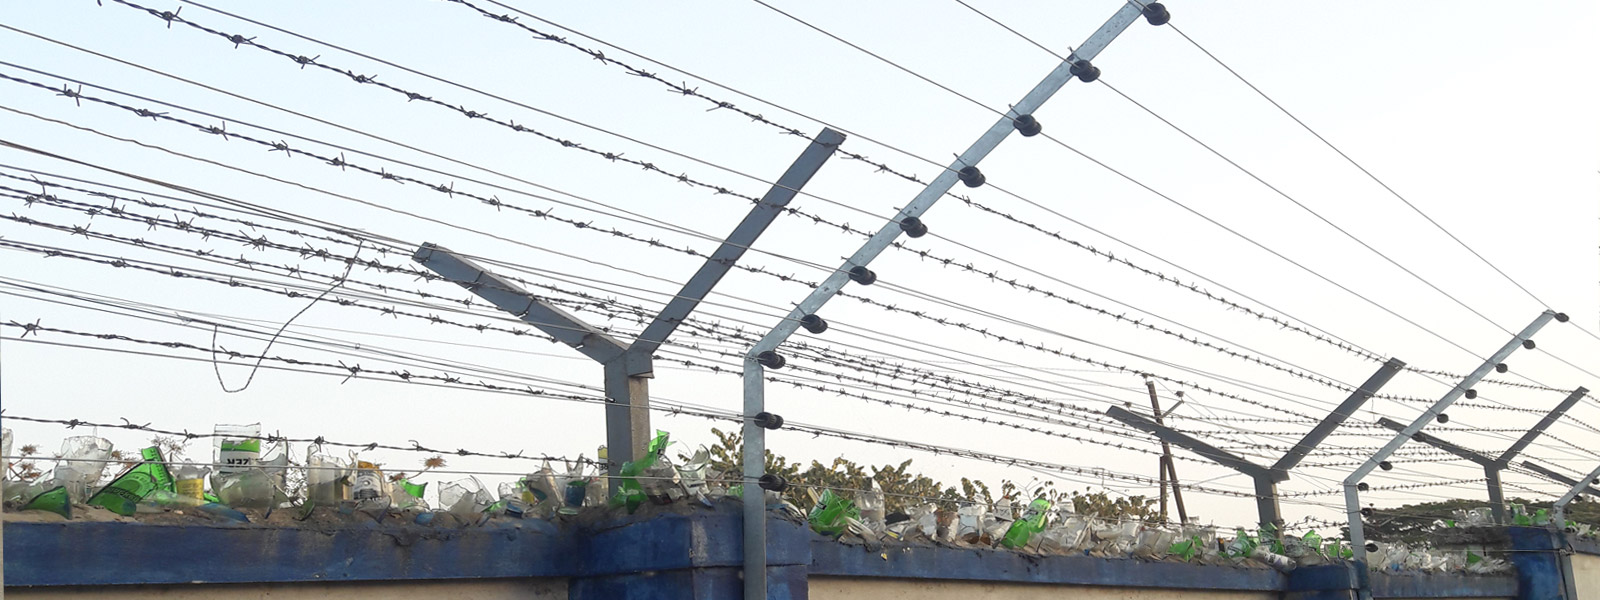 Welcome To Crown Solar Power Fencing Systems House Wiring Jobs In Mumbai Stop